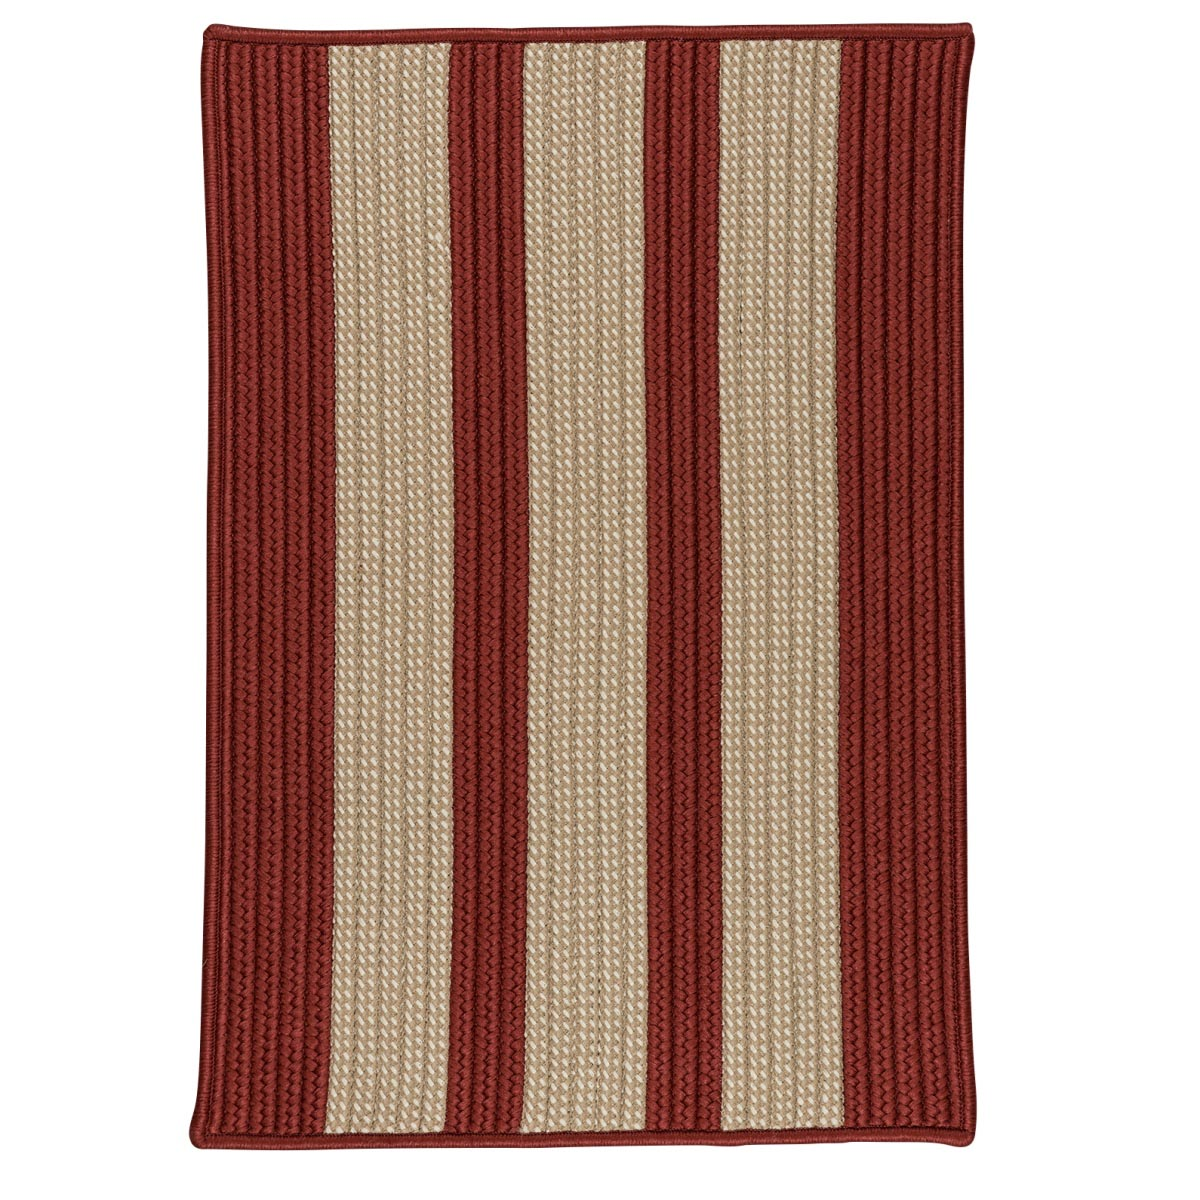 Boat House Rust Red Outdoor Braided Rectangular Rugs